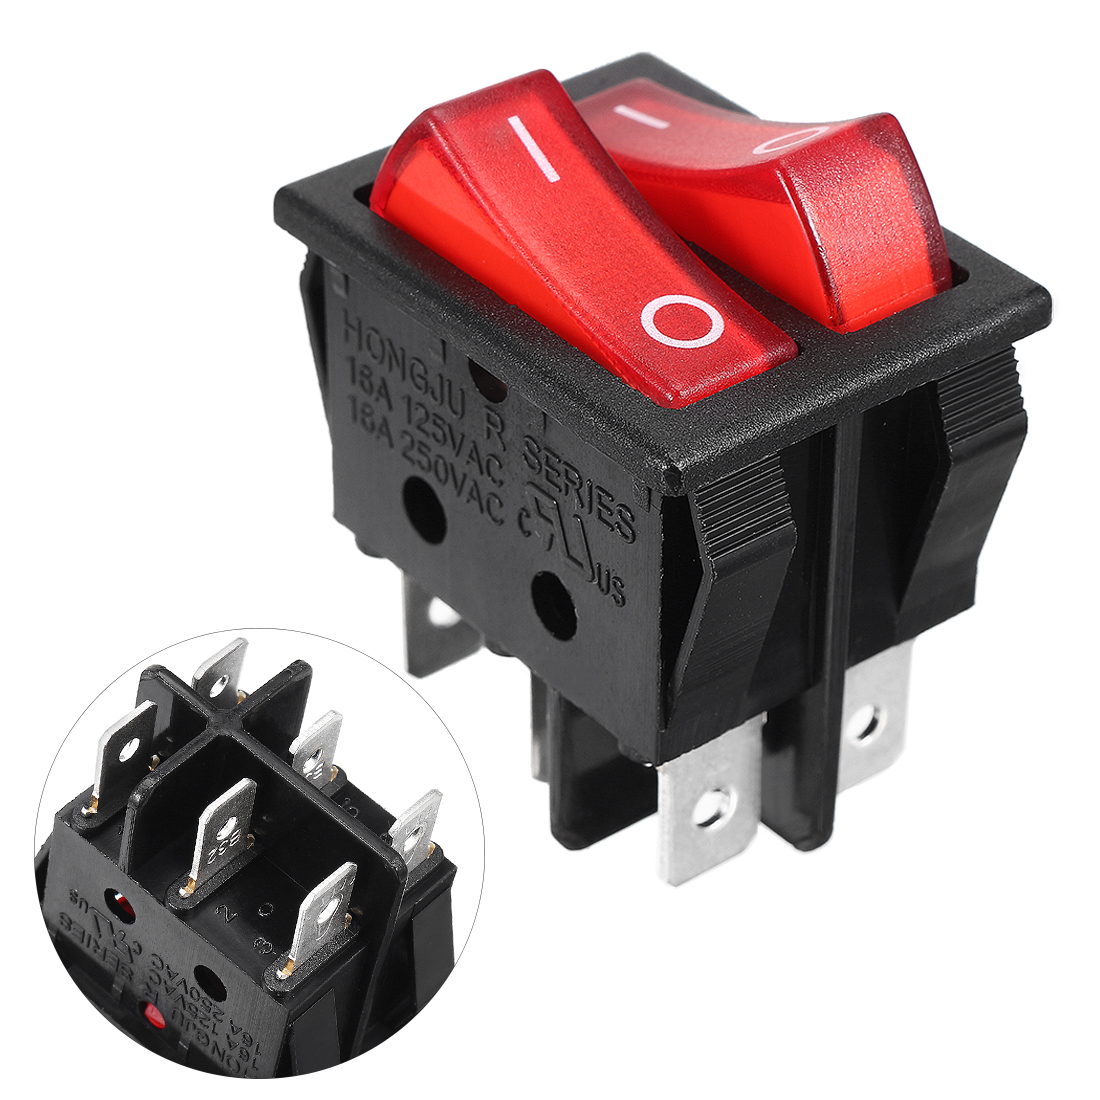 Red Light Illuminated 6 Pin Dual SPST ON/OFF Boat Rocker Switch AC 15A/250V 20A/125V